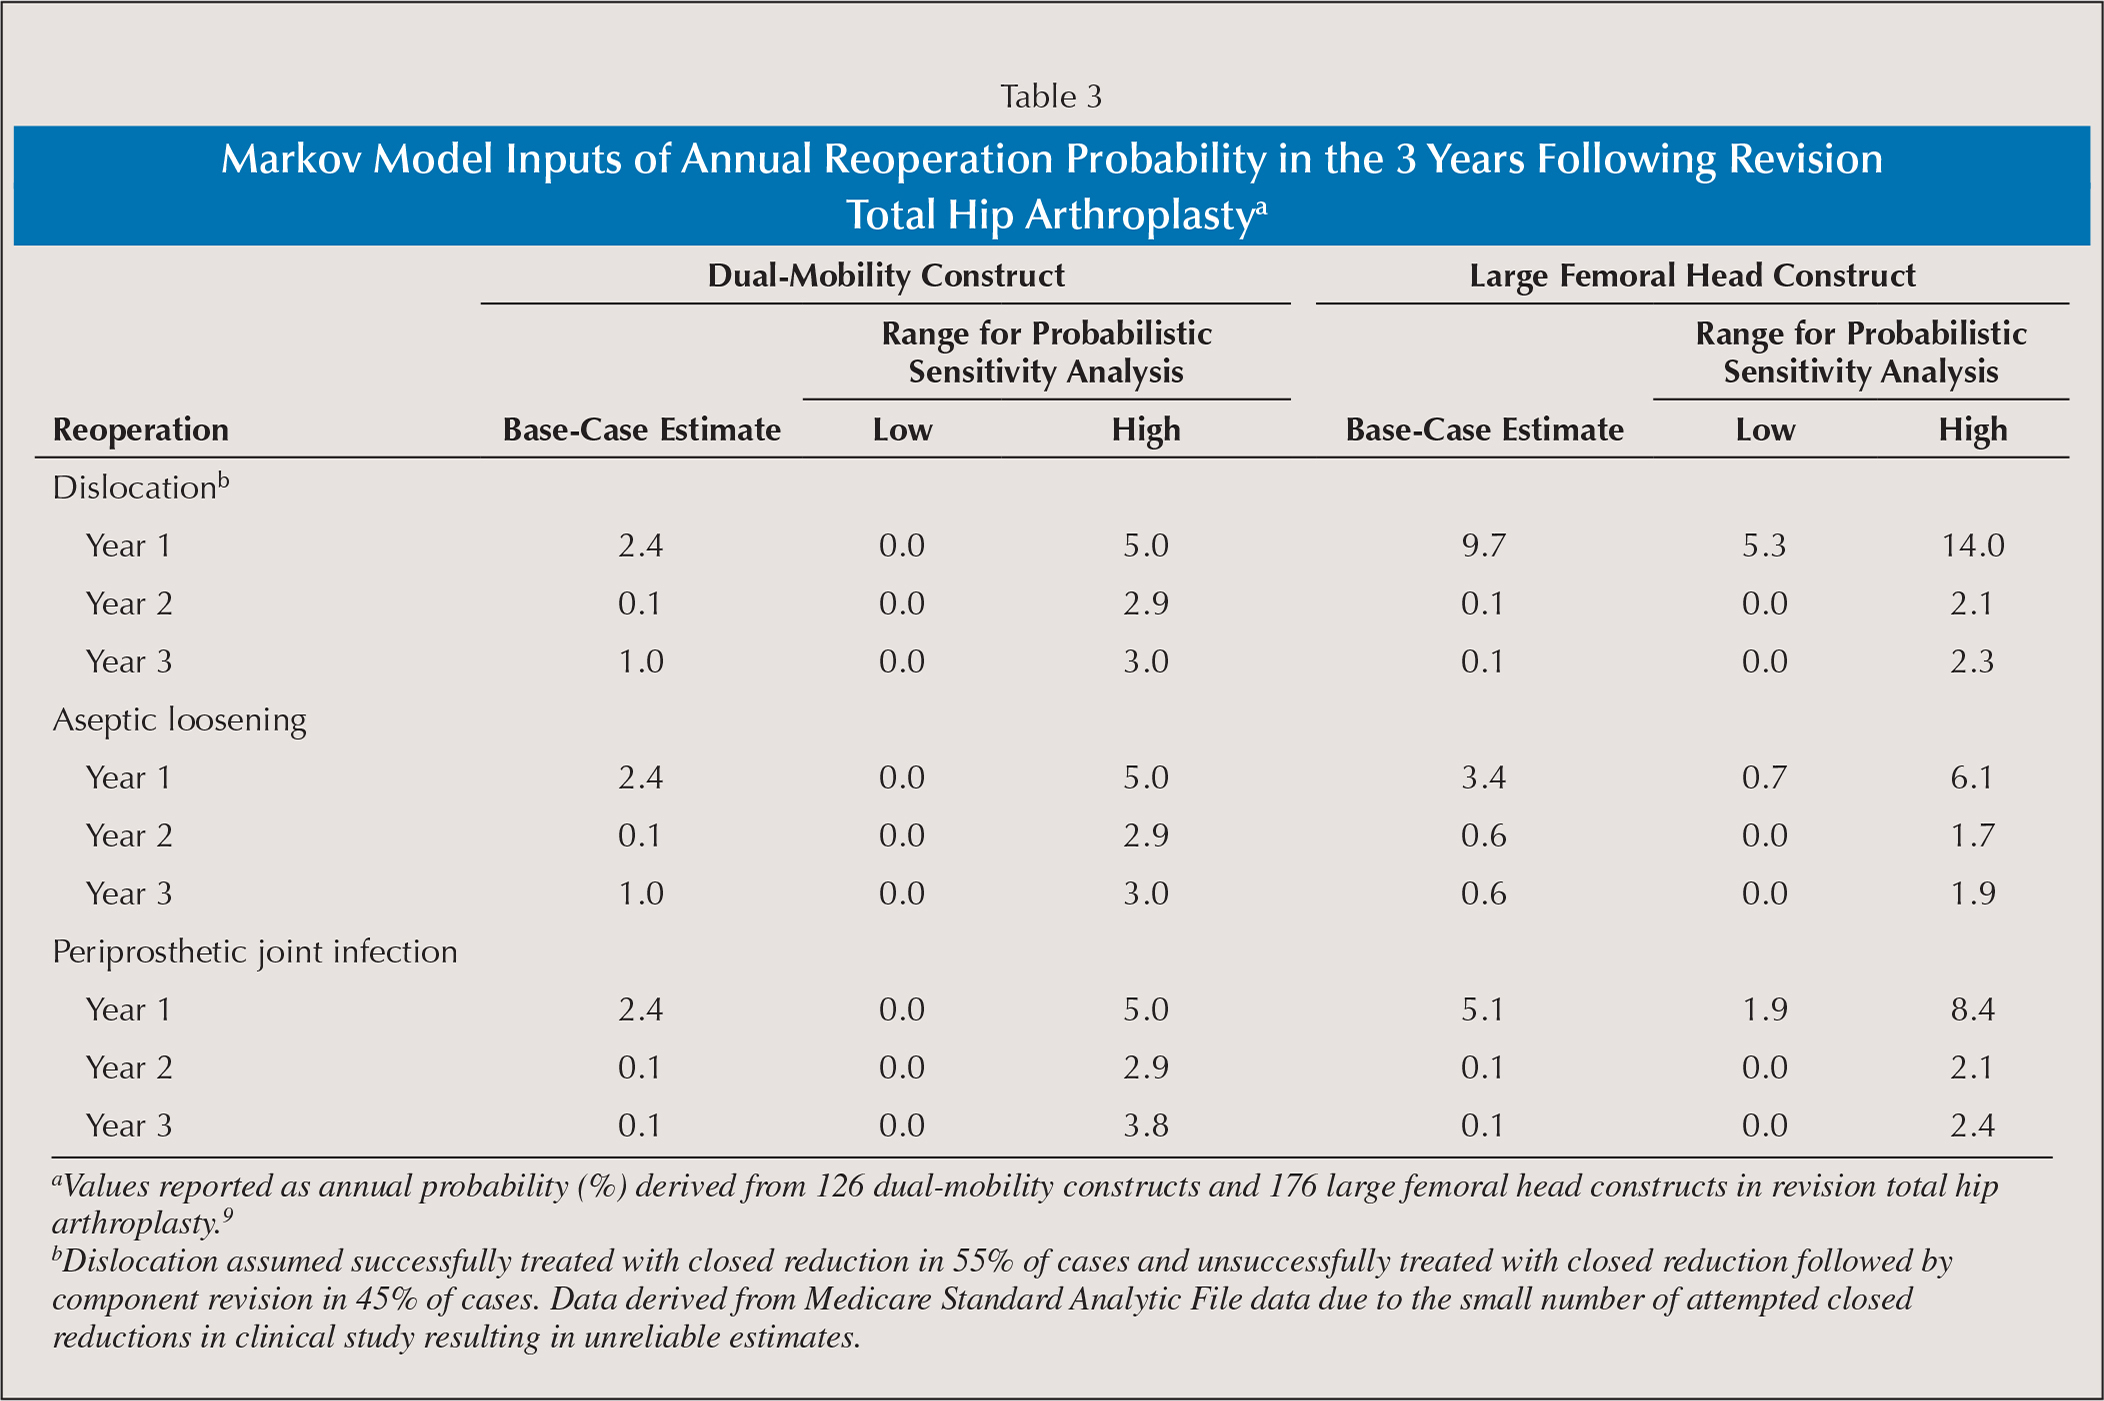 Markov Model Inputs of Annual Reoperation Probability in the 3 Years Following Revision Total Hip Arthroplastya